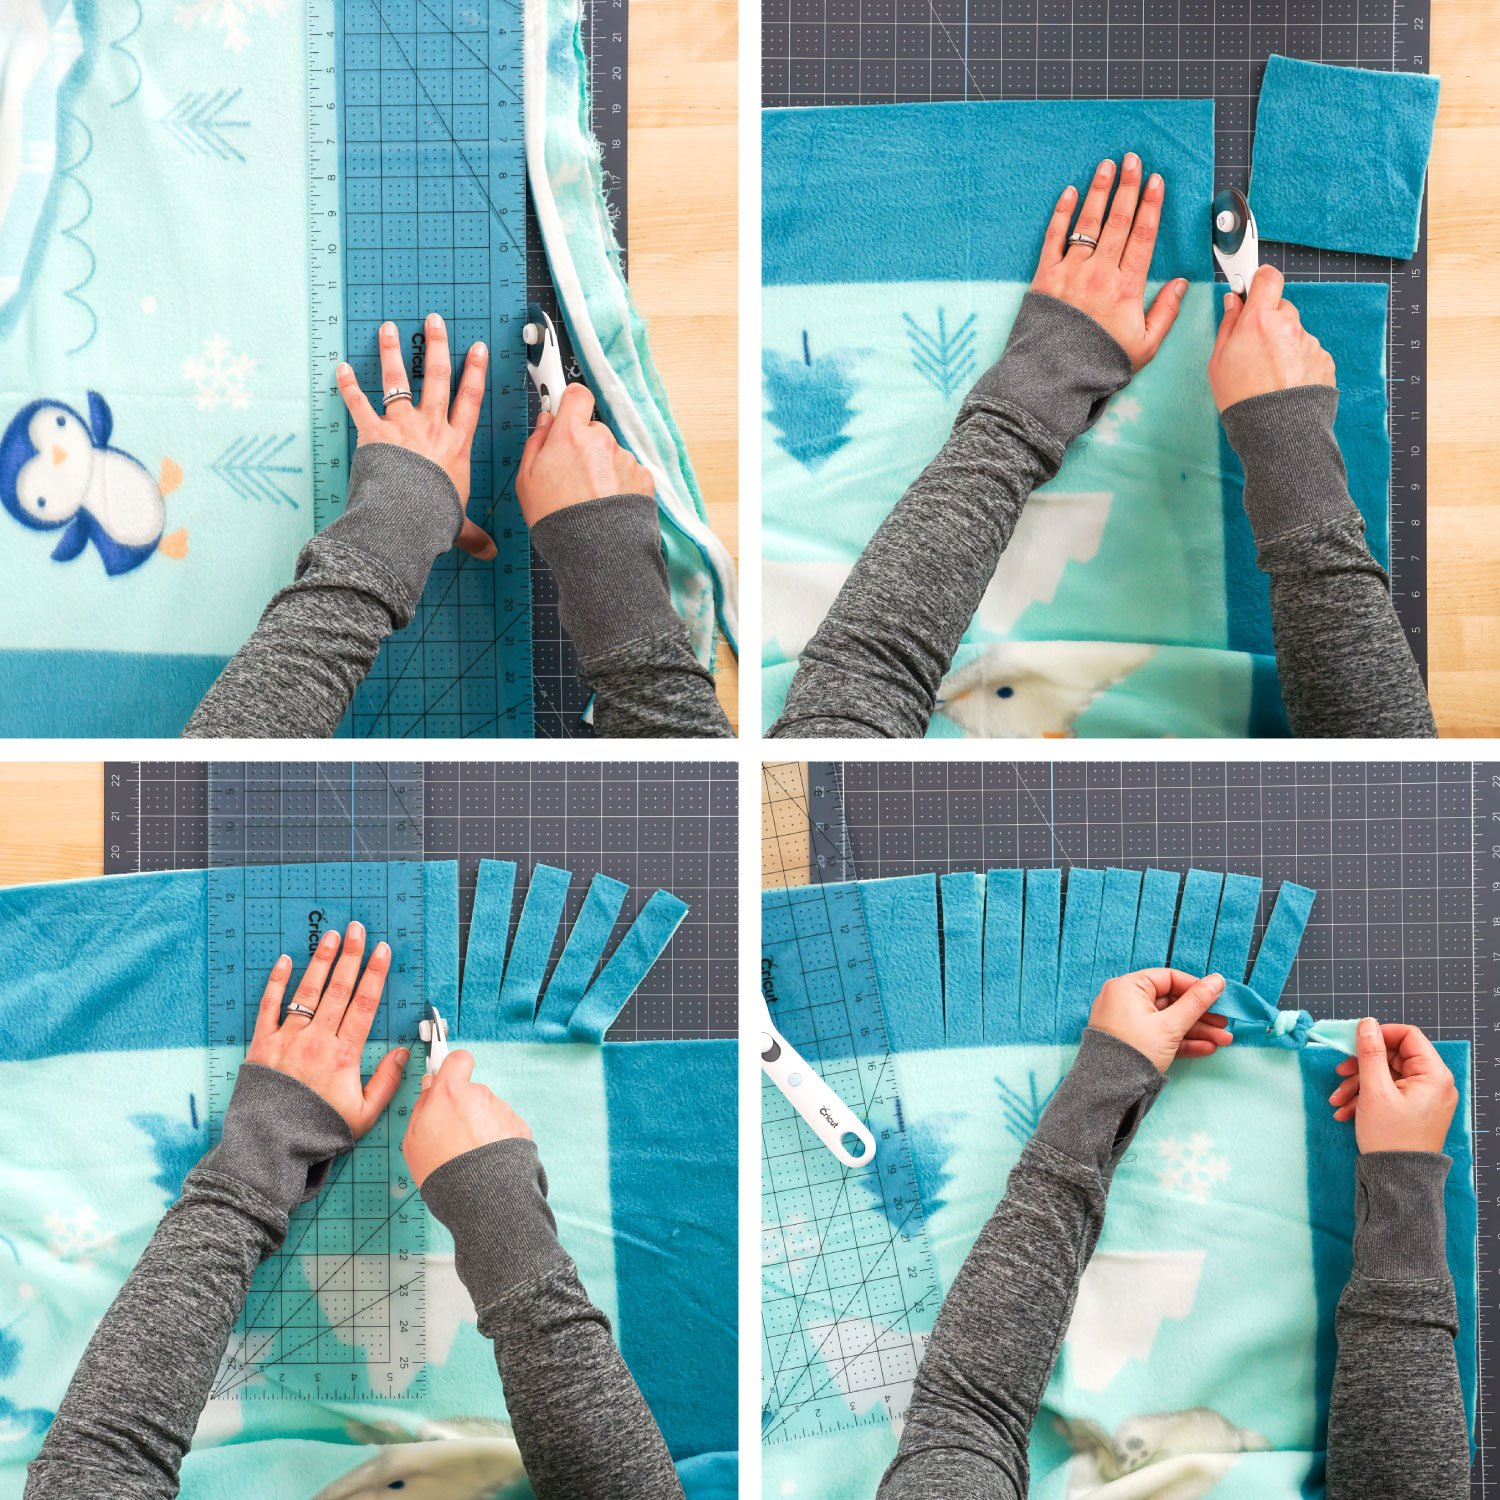 Steps for making the blanket: square up the fabric, cut the corners, make the fringe, tie the knots.